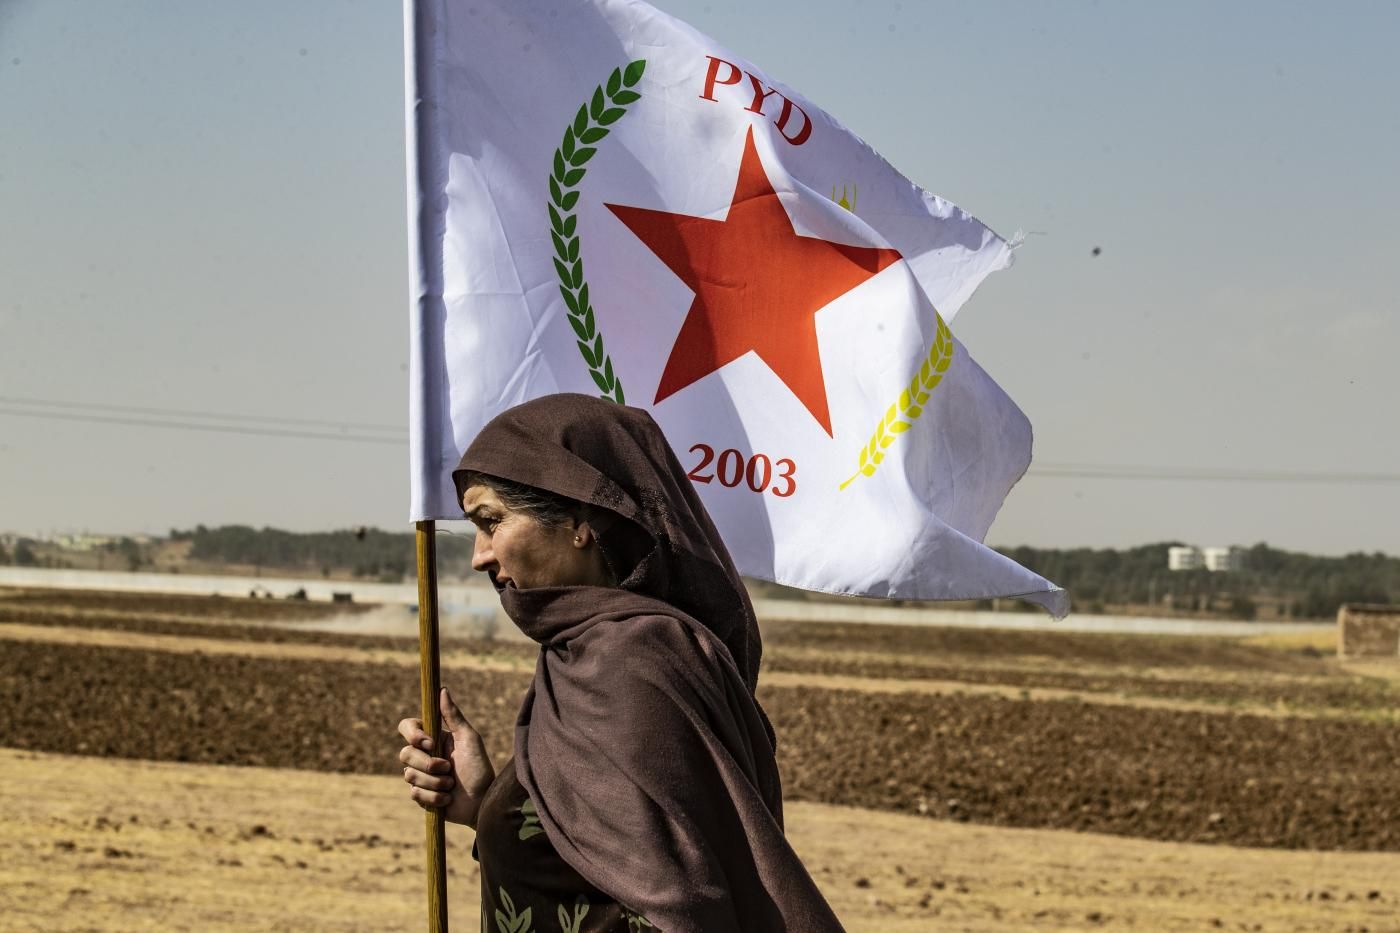 Pressured by Assad and assaulted by Turkey, can the Rojava project survive?